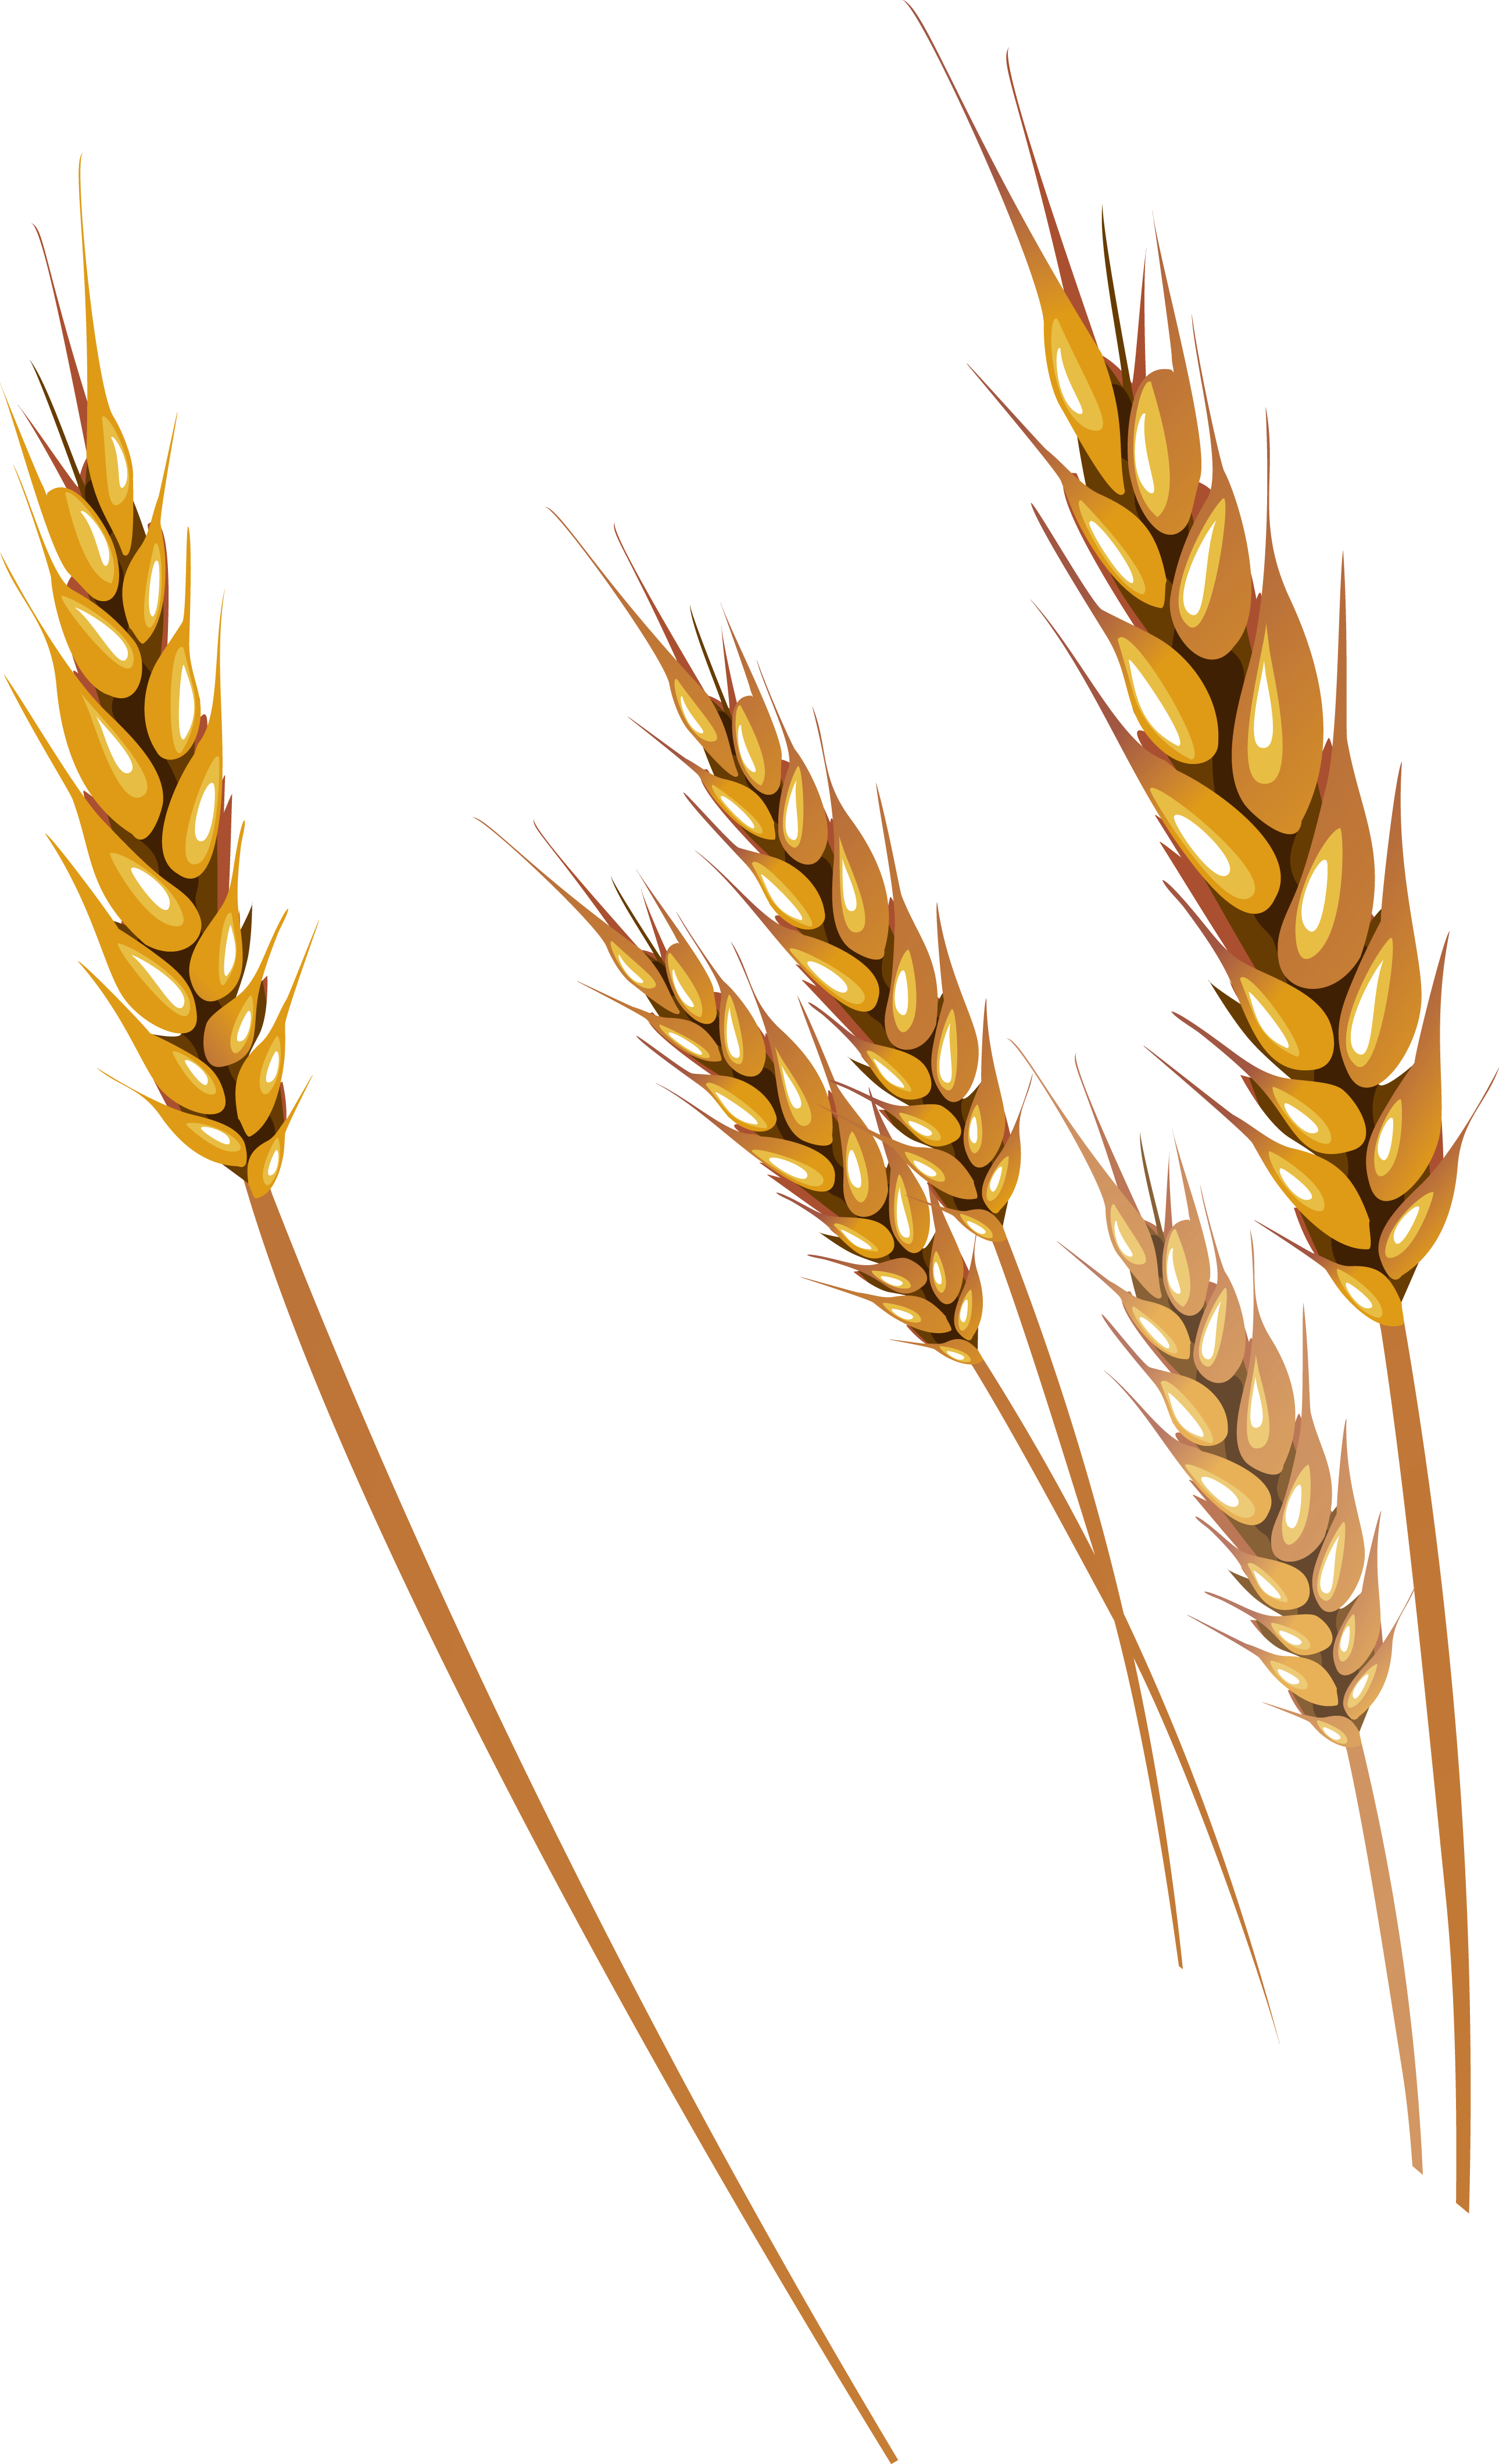 Png image purepng free. Wheat clipart transparent background